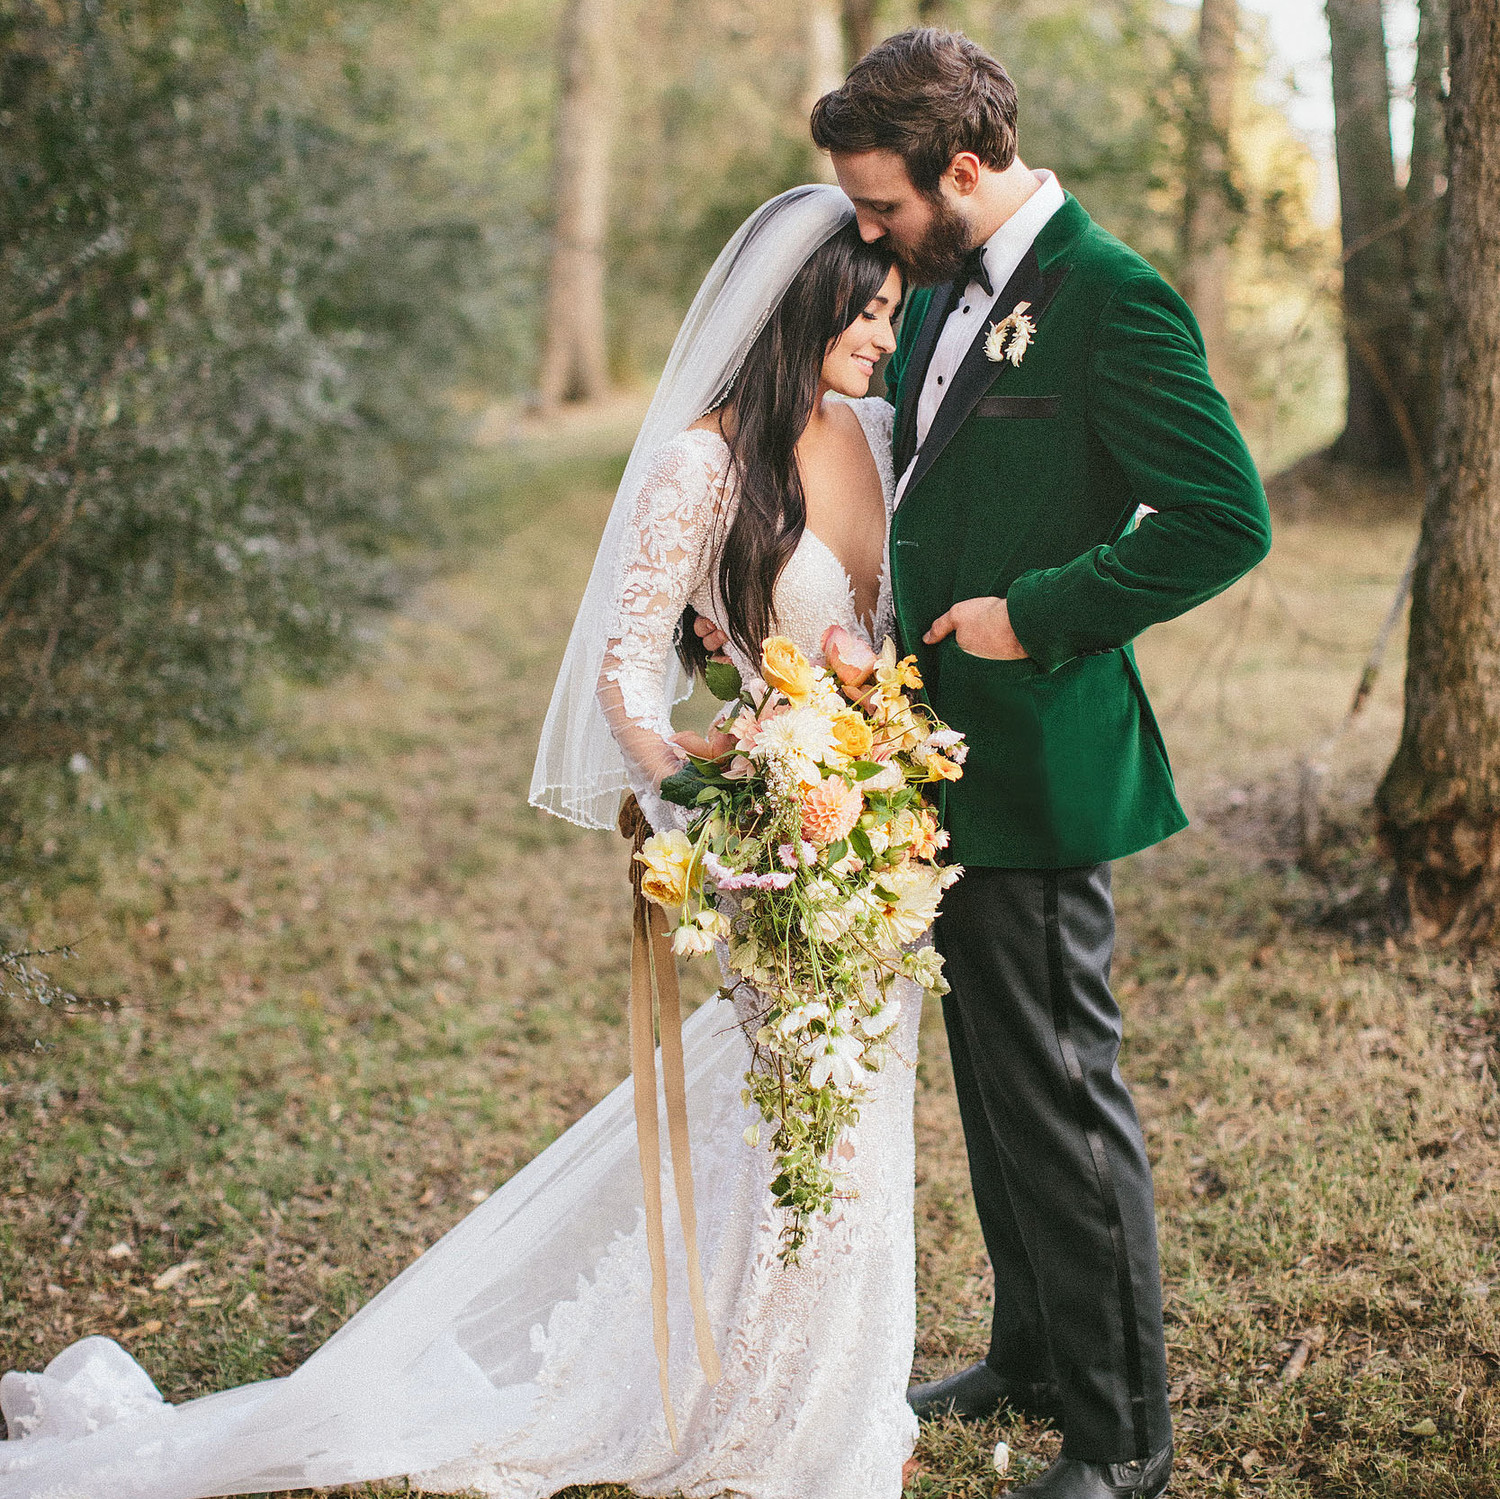 kacey-ruston-wedding-tennessee-couple-10